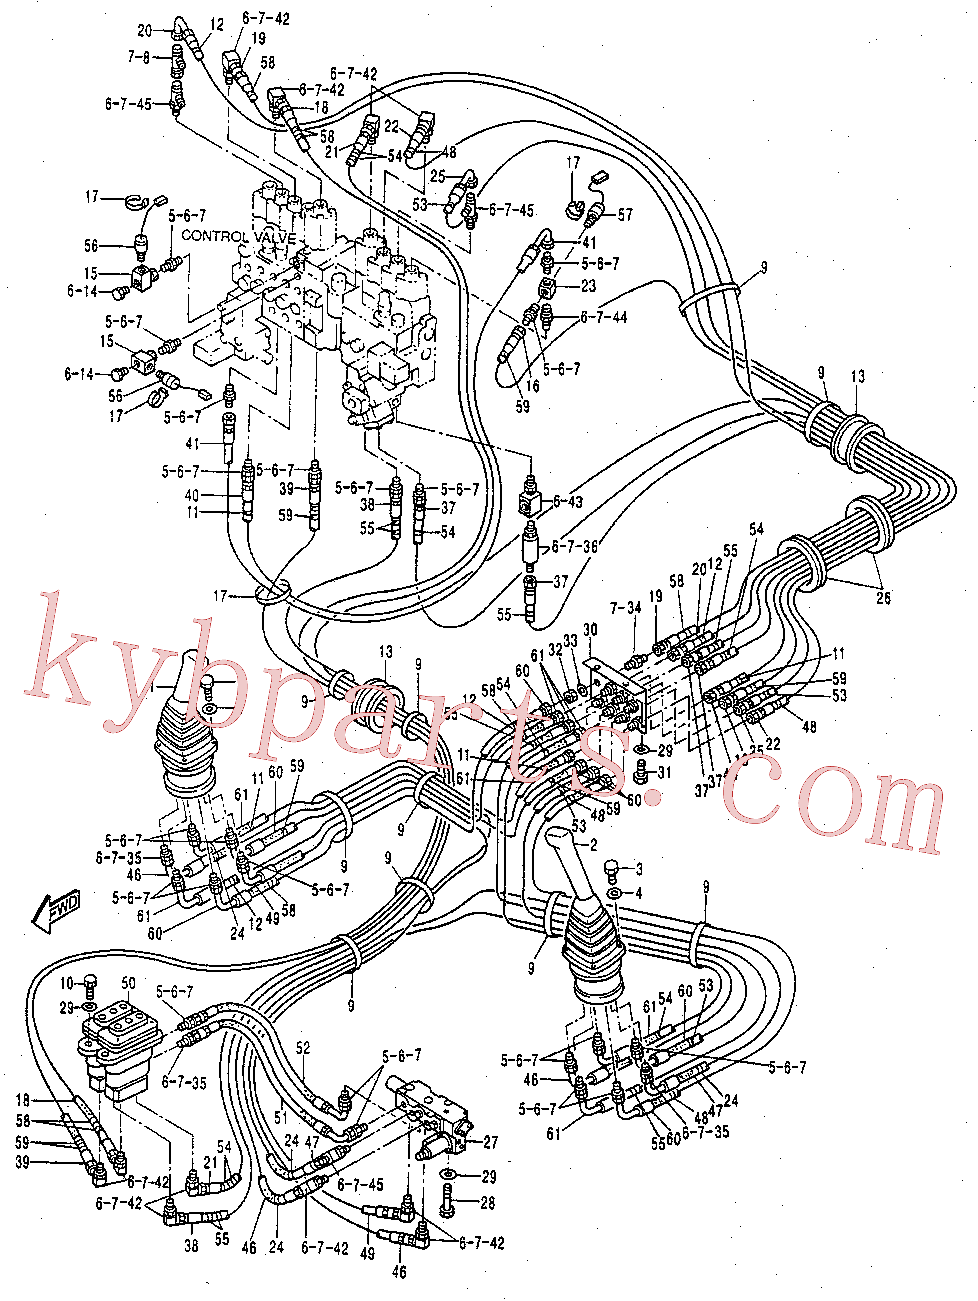 CAT 099-0365 for 320B L Excavator(EXC) hydraulic system 119-2390 Assembly